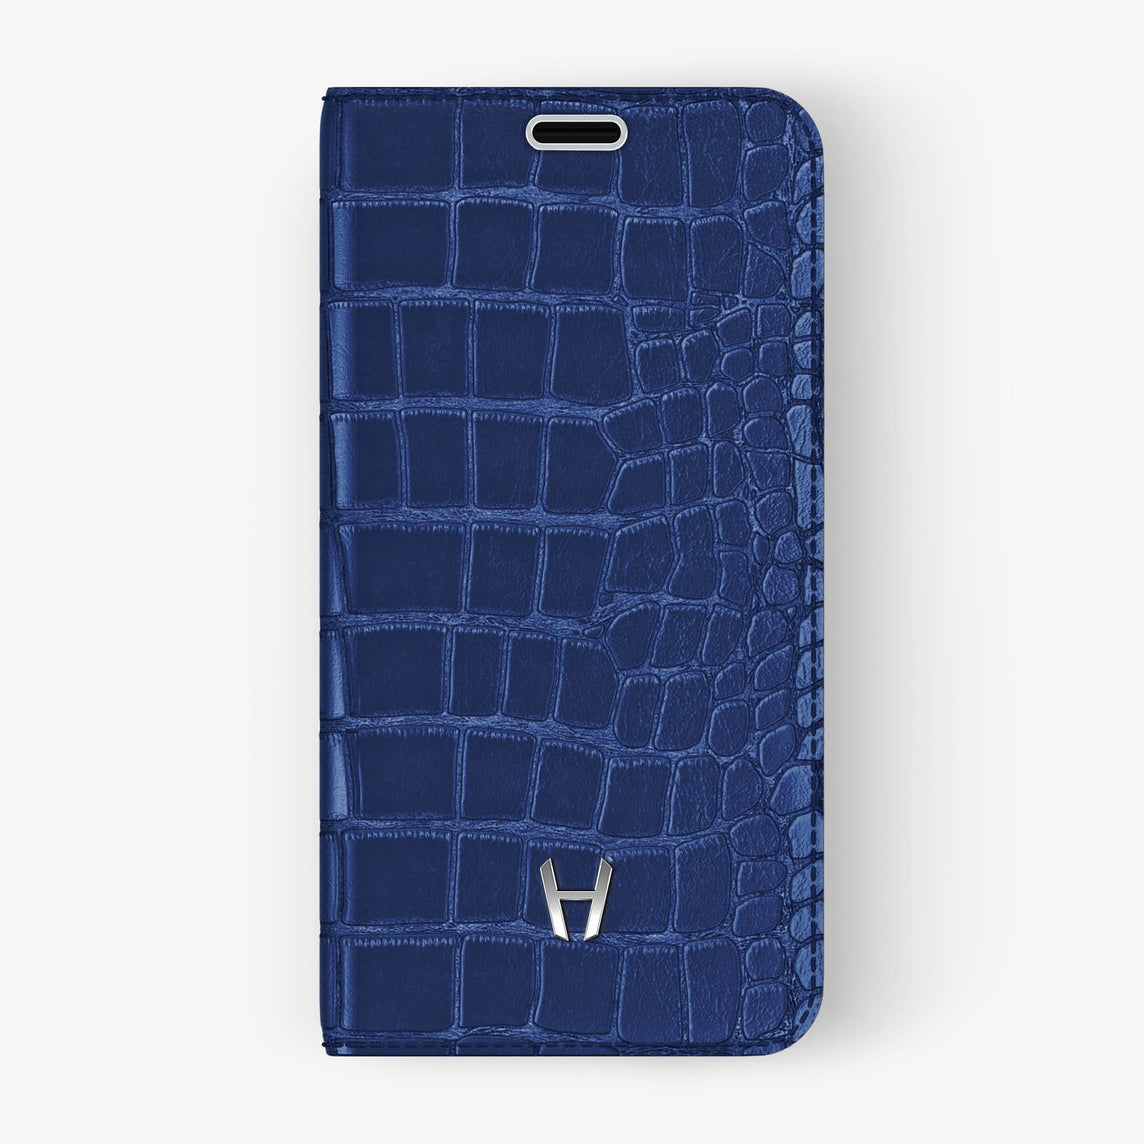 Alligator Folio Case iPhone Xs Max | Navy Blue - Stainless Steel without-personalization